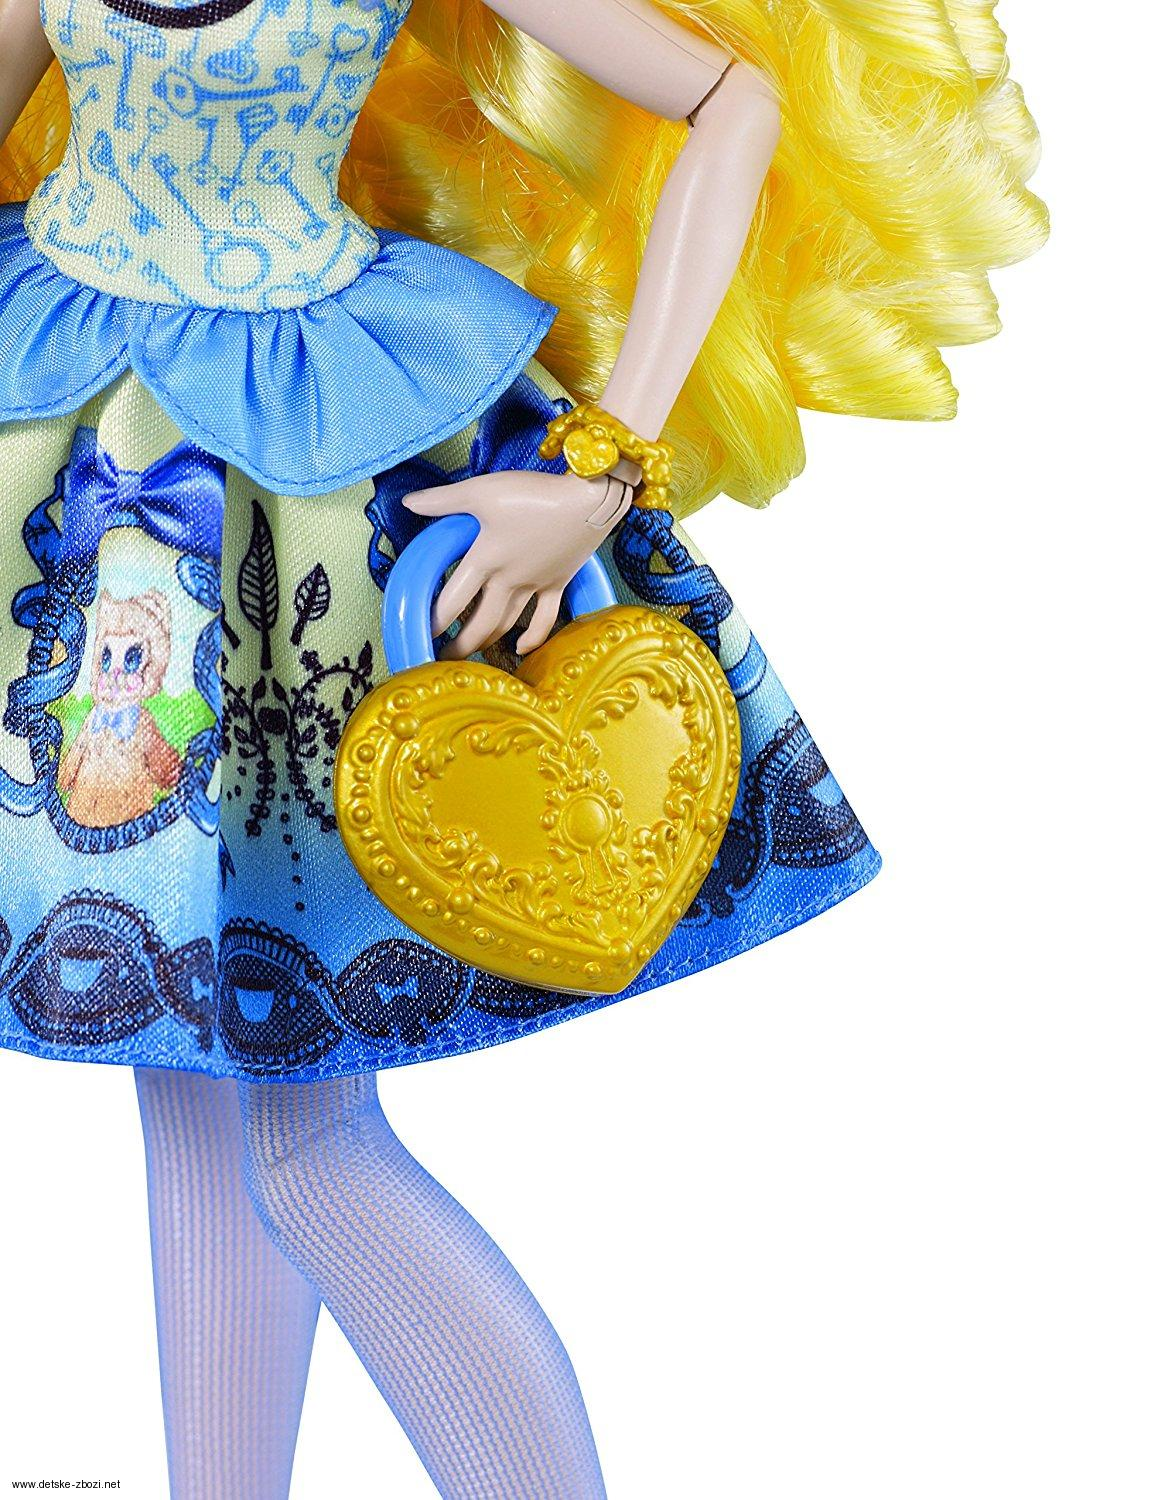 Mattel Ever After High šlechtici Blondie Lockes panenka 27 cm